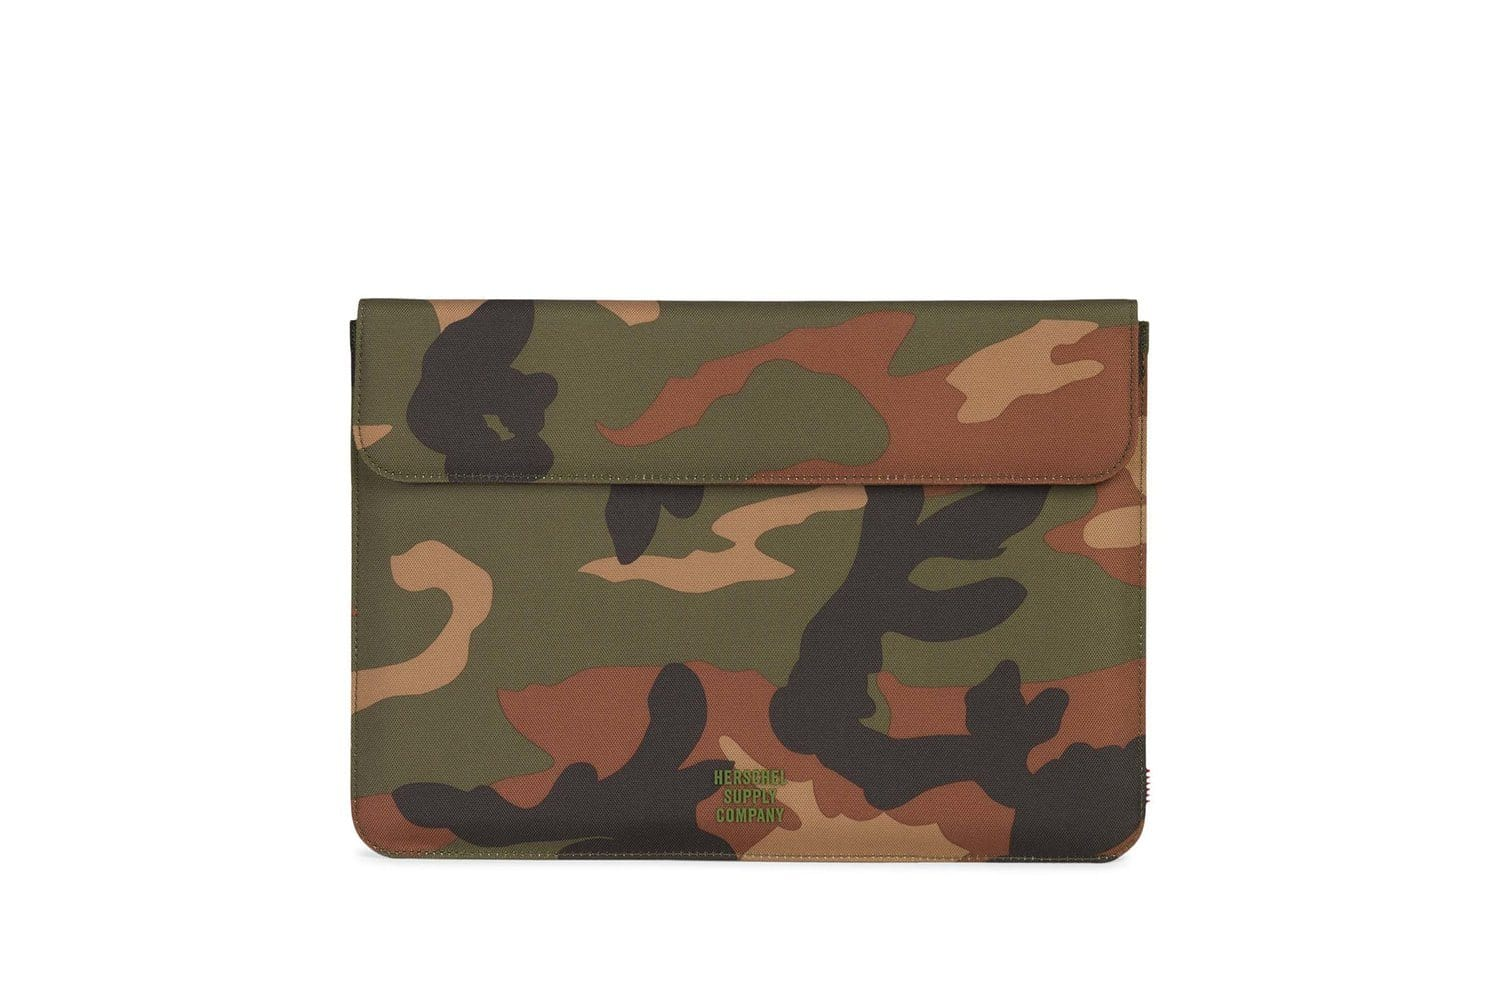 SPOKANEN 13 600D POLY - 10193-00032 ACCESSORIES HERSCHEL WCAMO OS